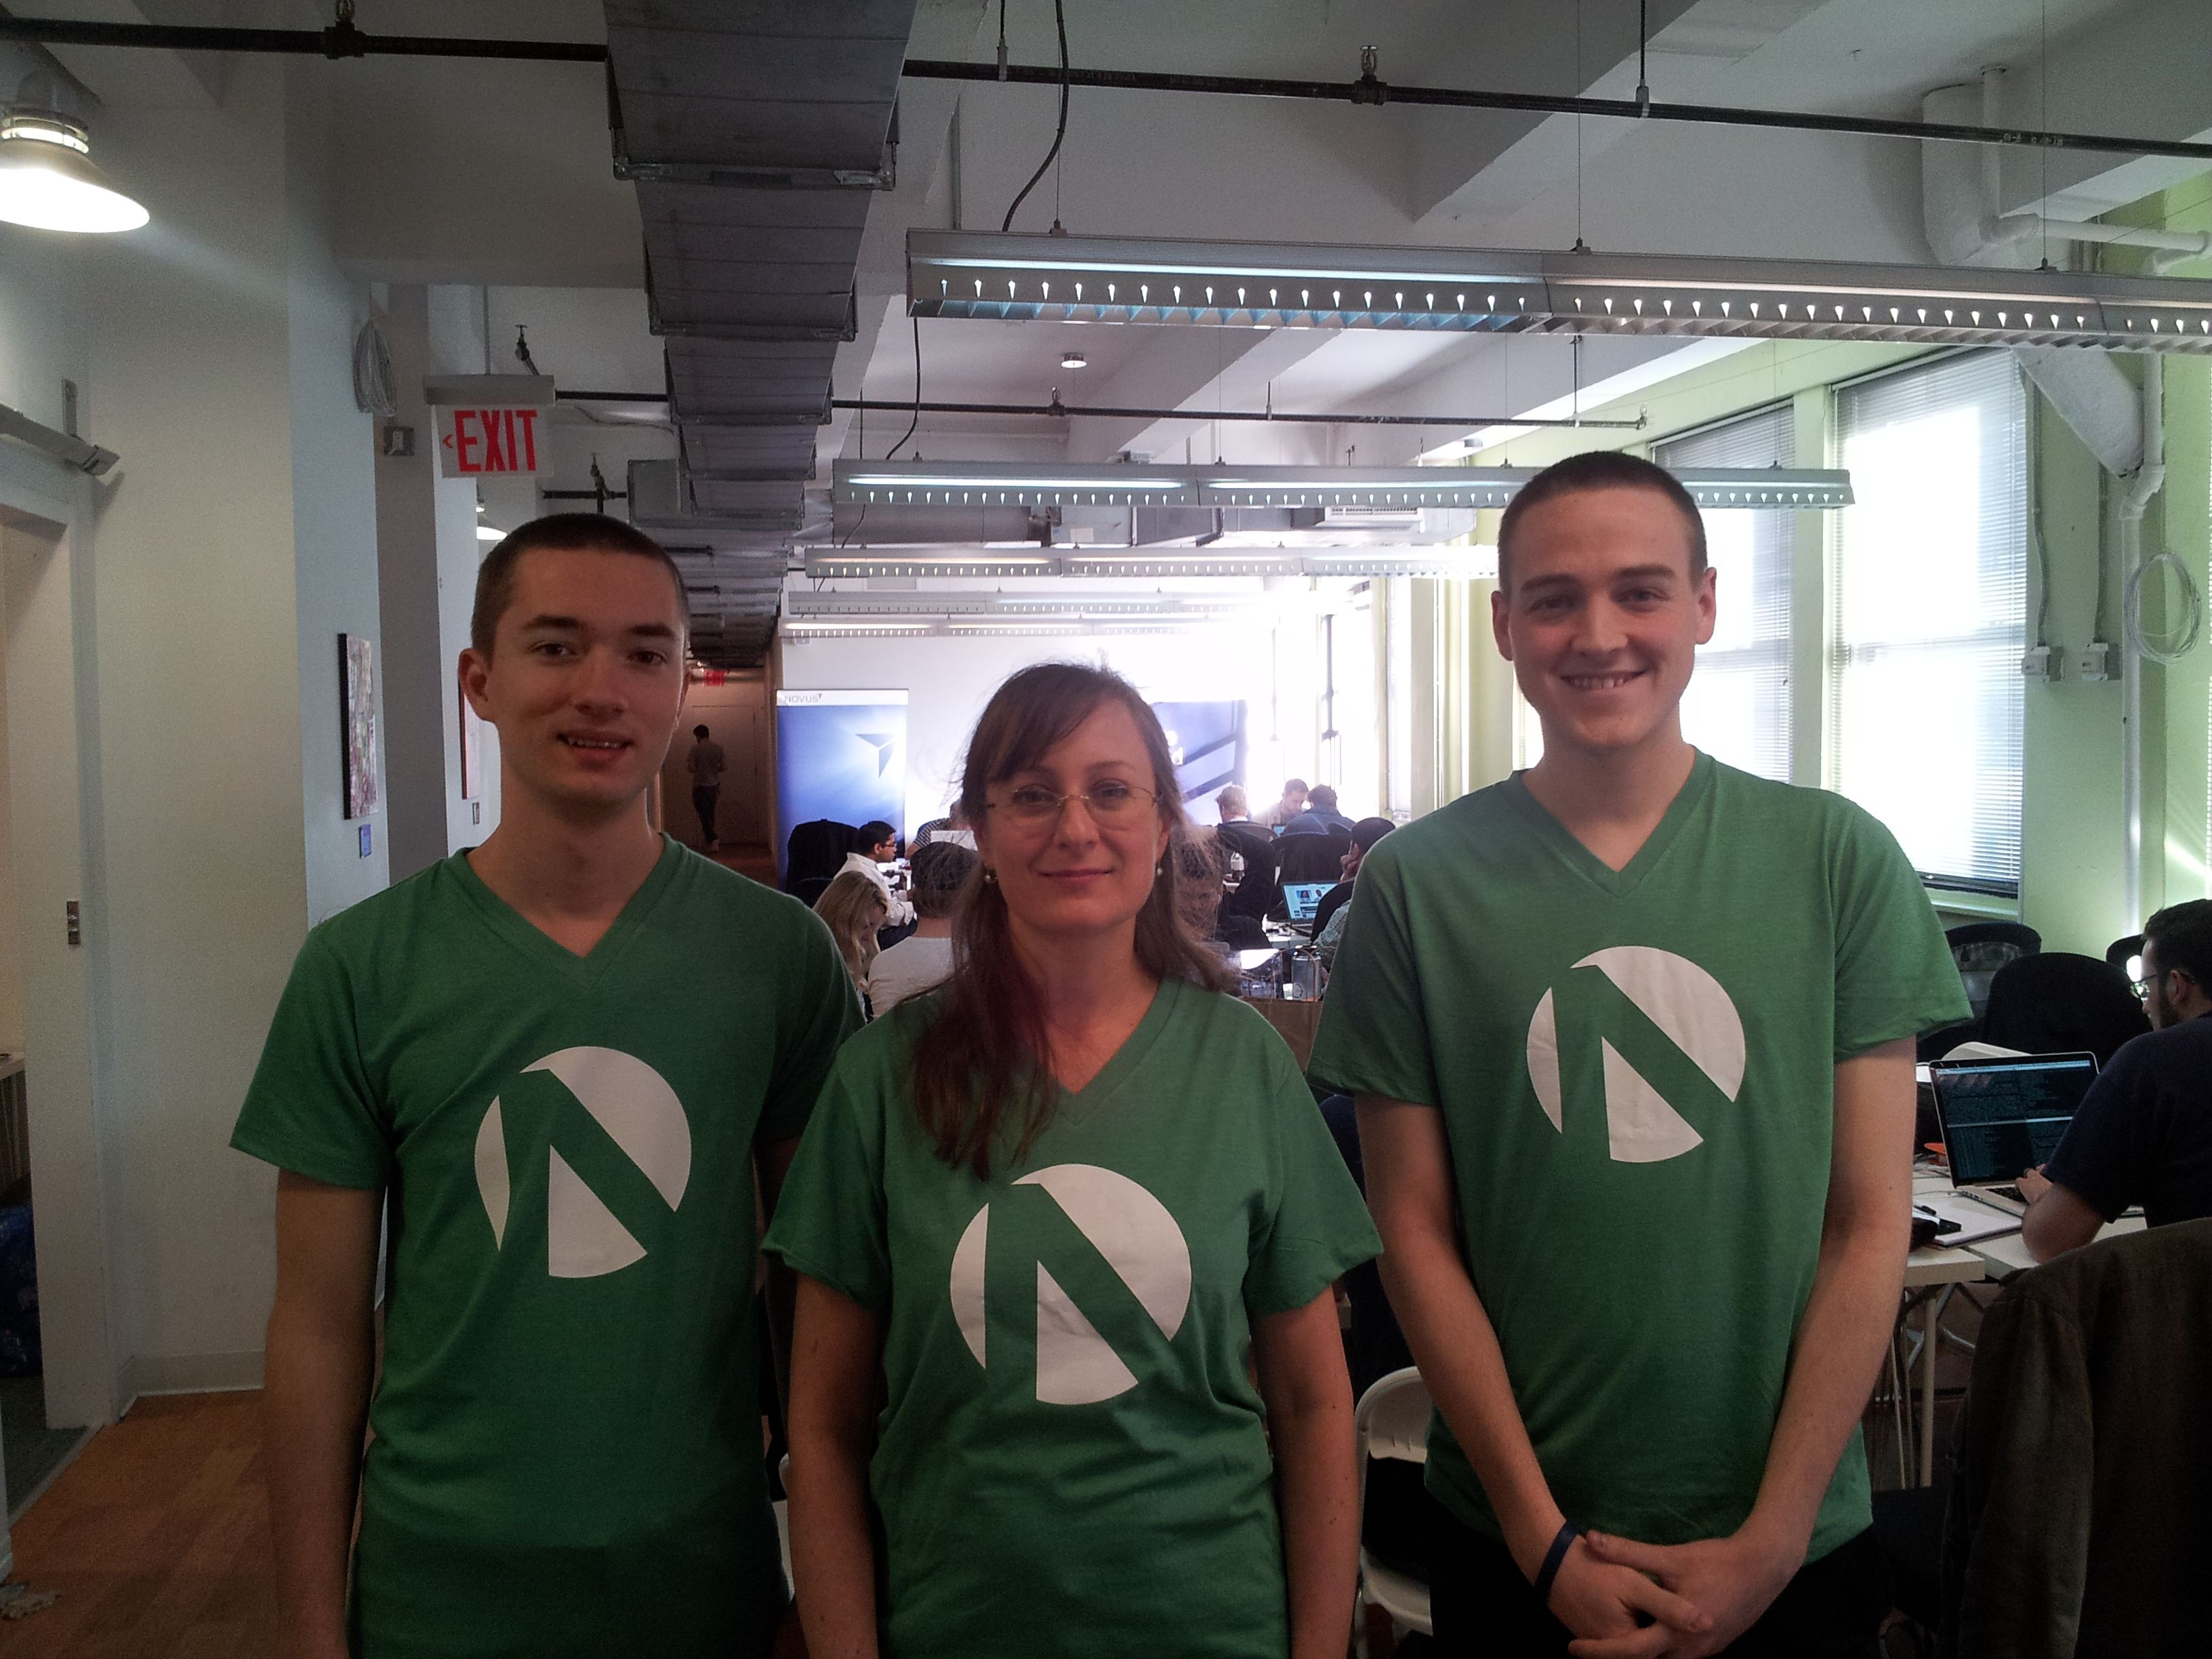 OANDA's REST API shines at FinTech Hackathon in NYC | Technology